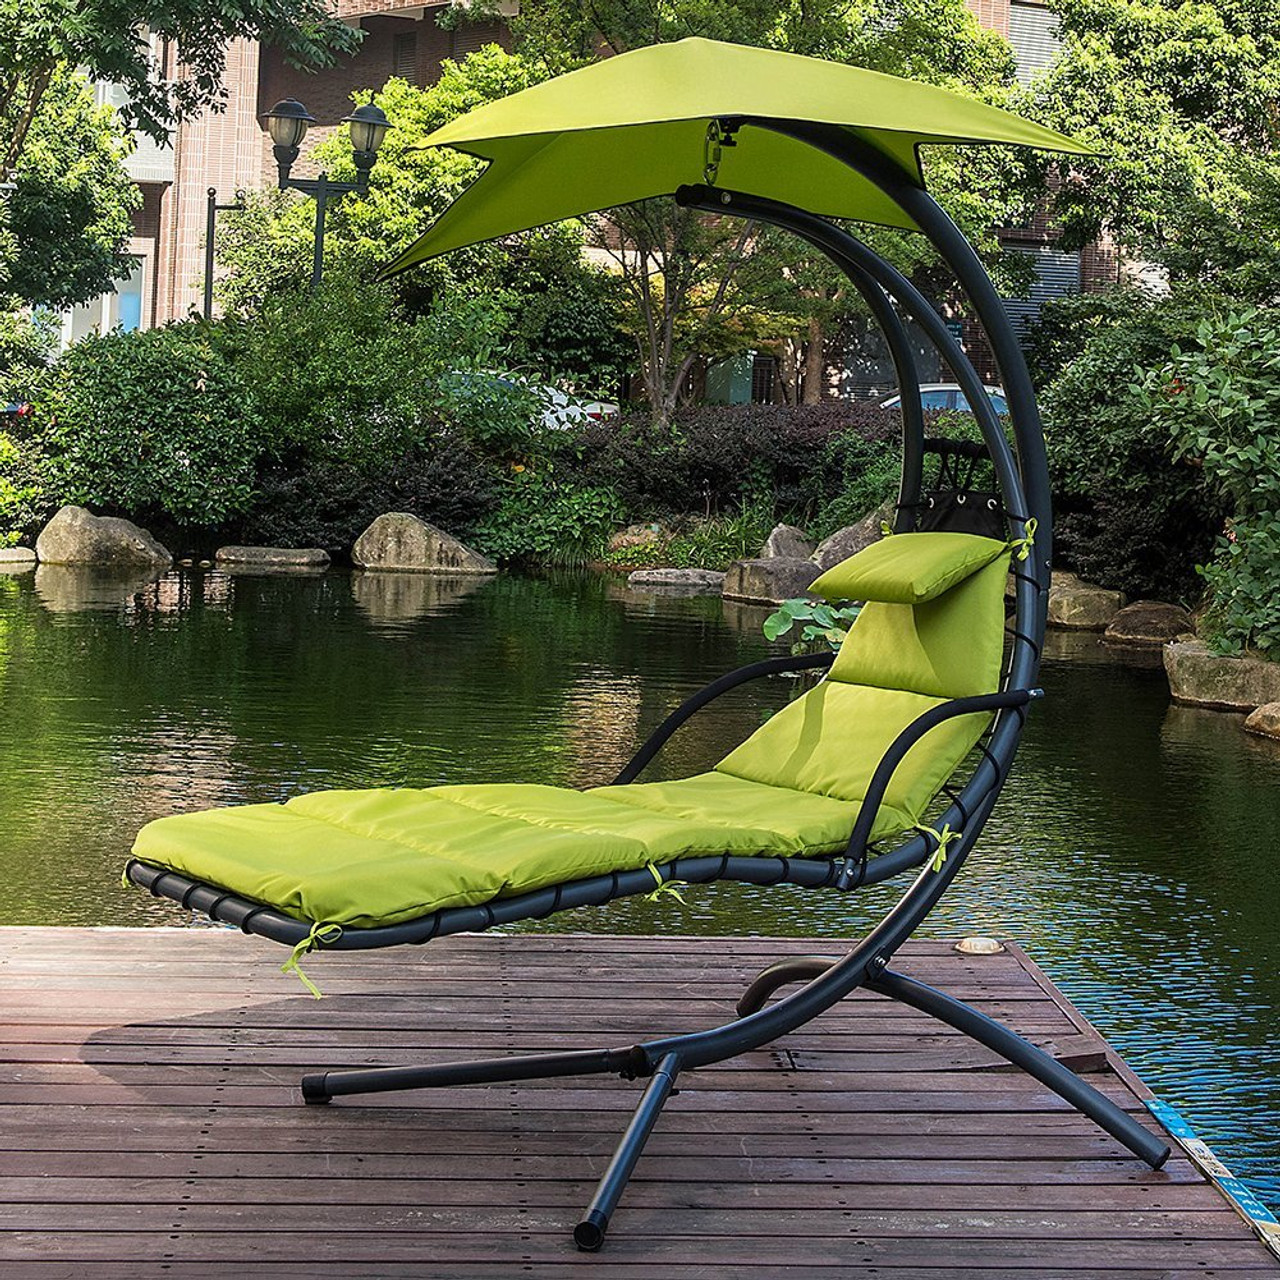 Elegant Lazy Daze Hammocks Dream Chair With Umbrella Hanging Chaise Lounge Chair  Arc Curved Hammock (Apple